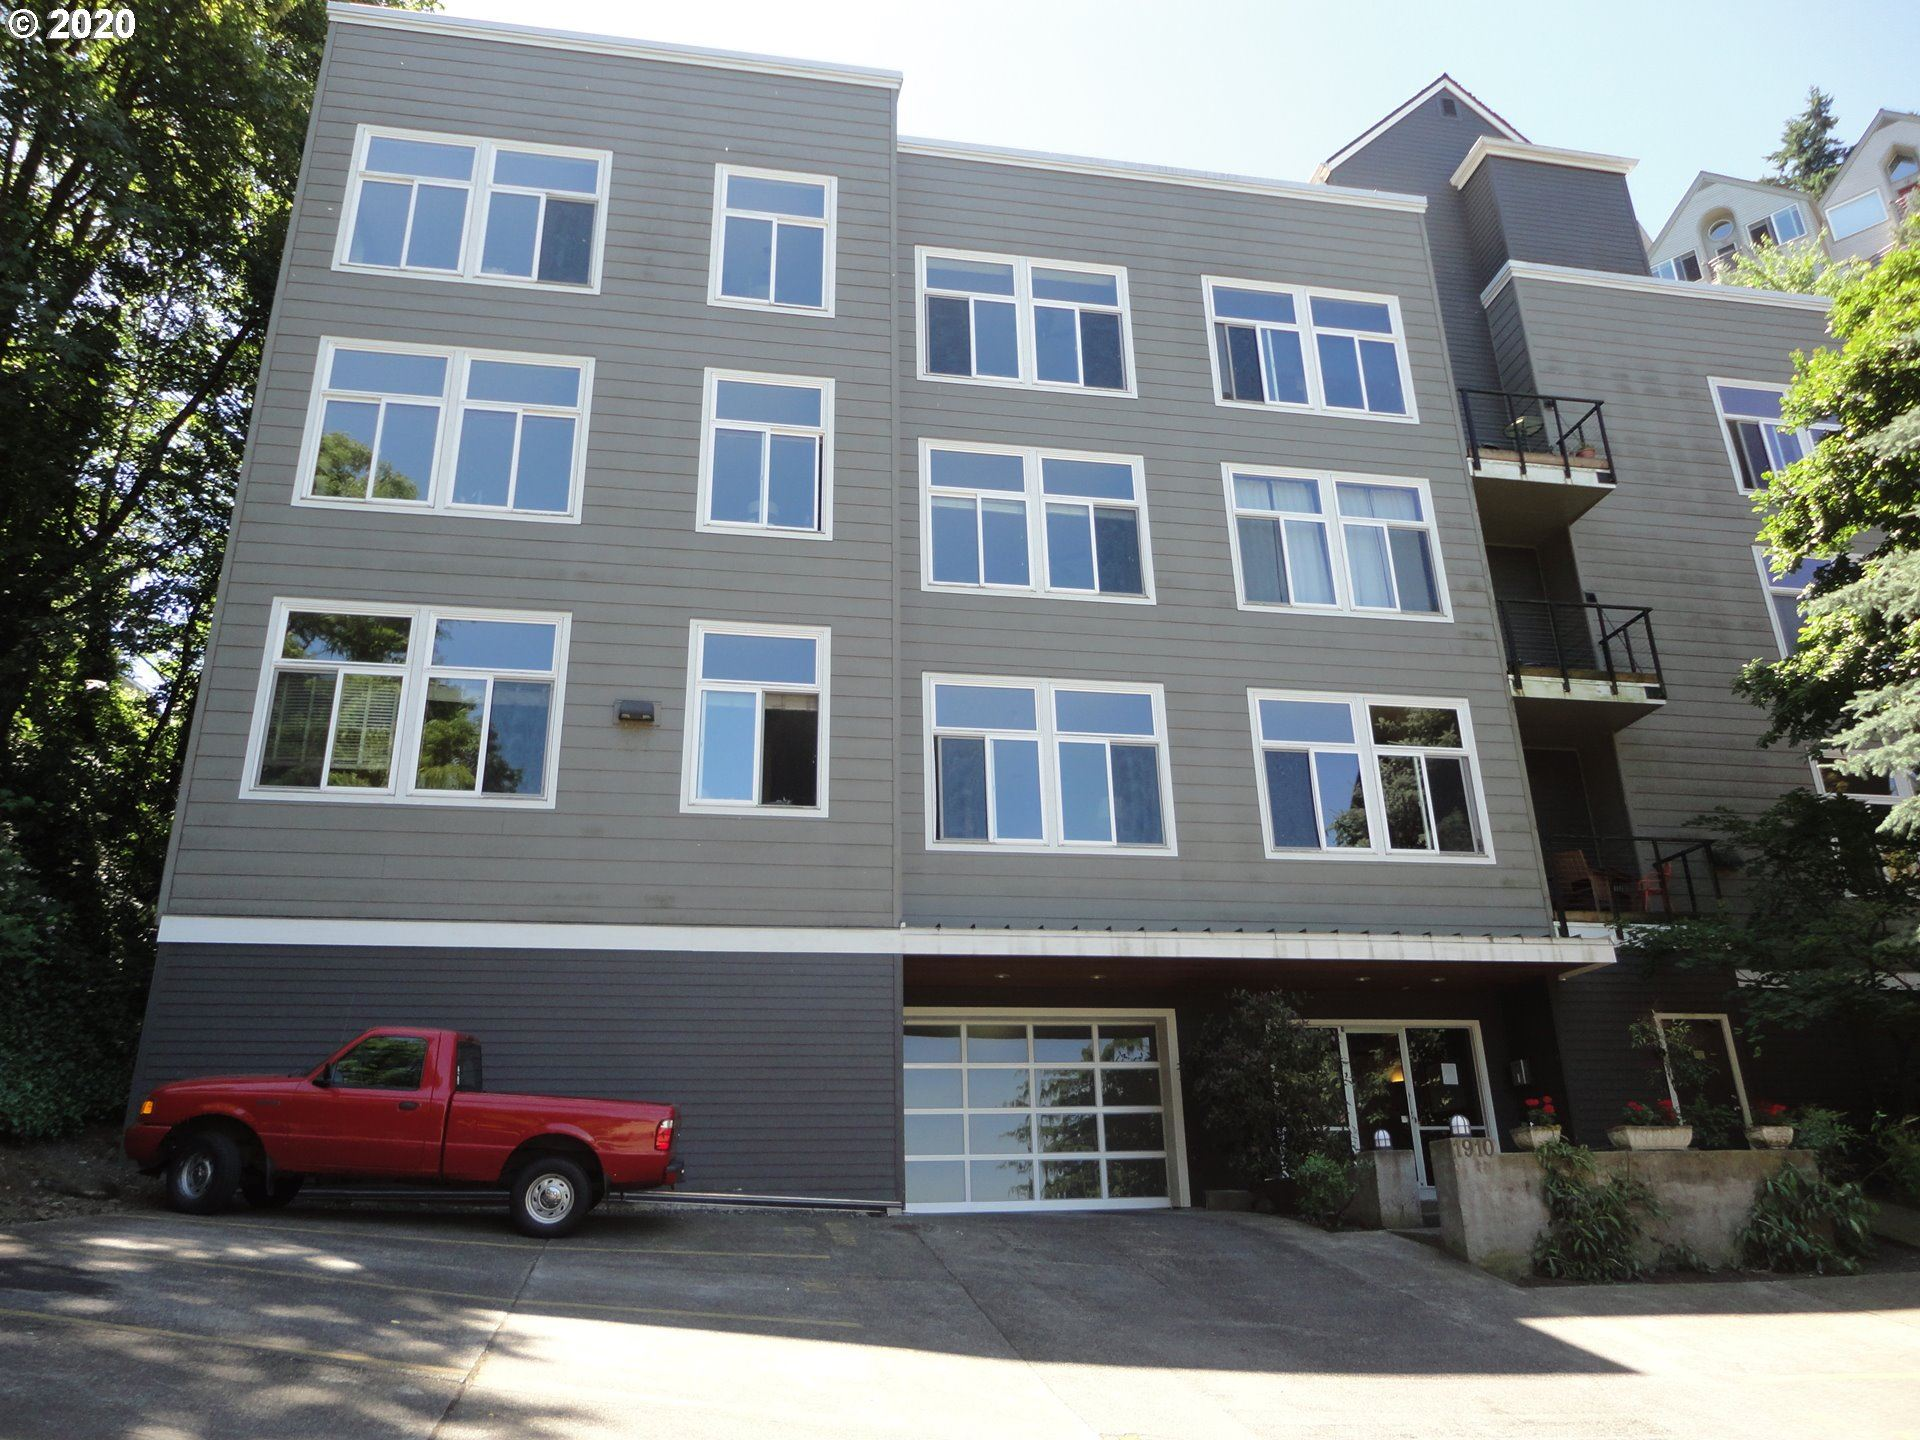 1910 SW 18TH AVE #43, Portland, OR 97201 - MLS#: 20230812